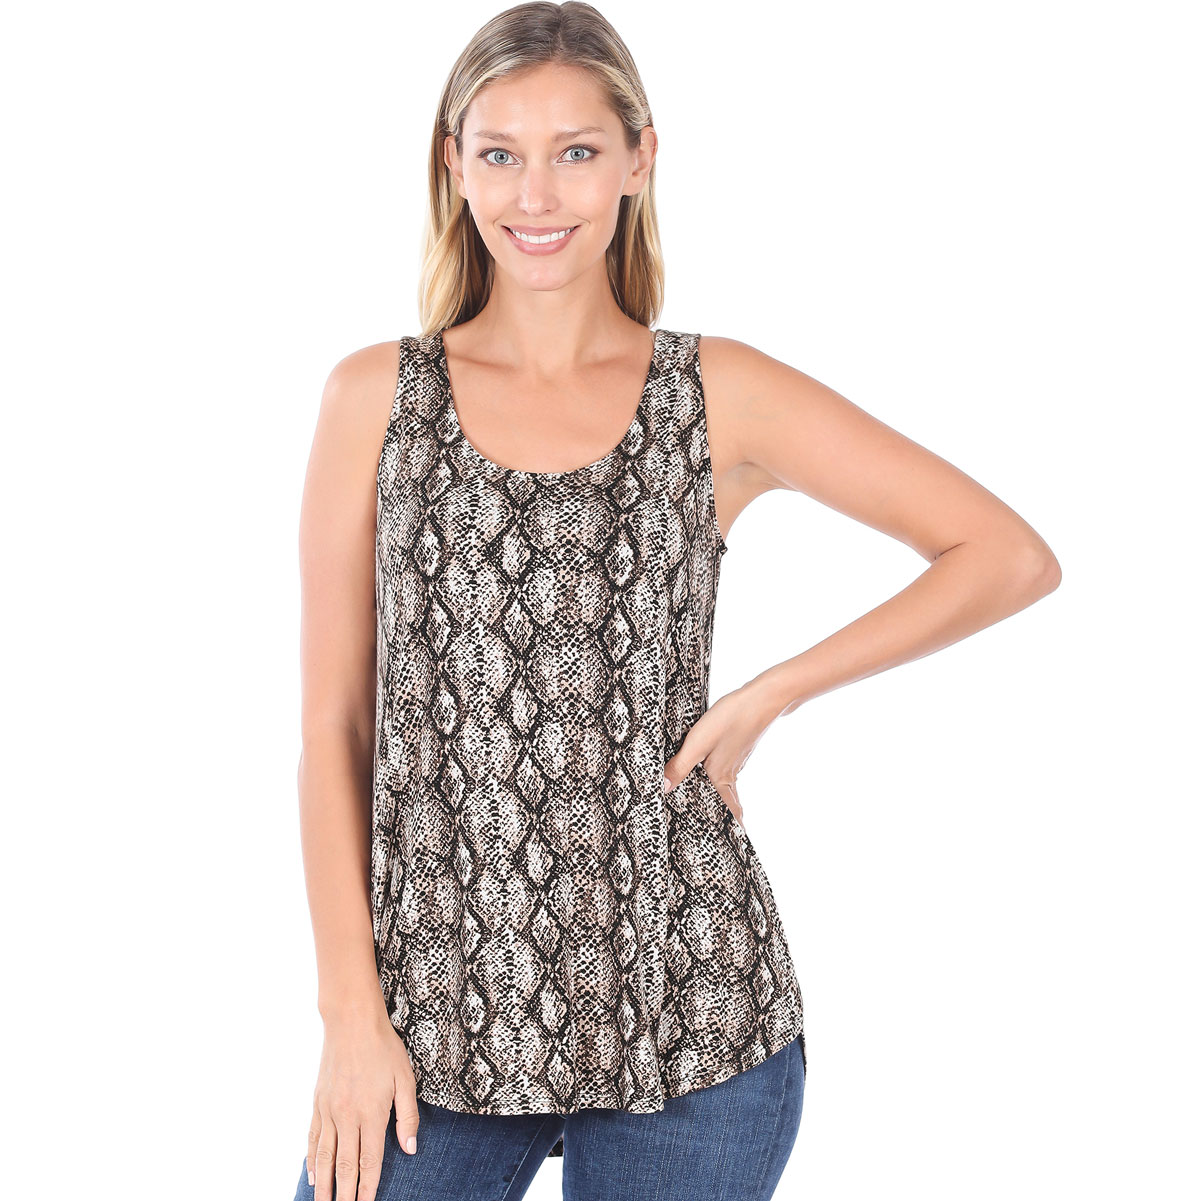 Tops- Sleeveless Round Hem Prints 4308 - SNAKESKIN BROWN Sleeveless Round Hem Top 4308